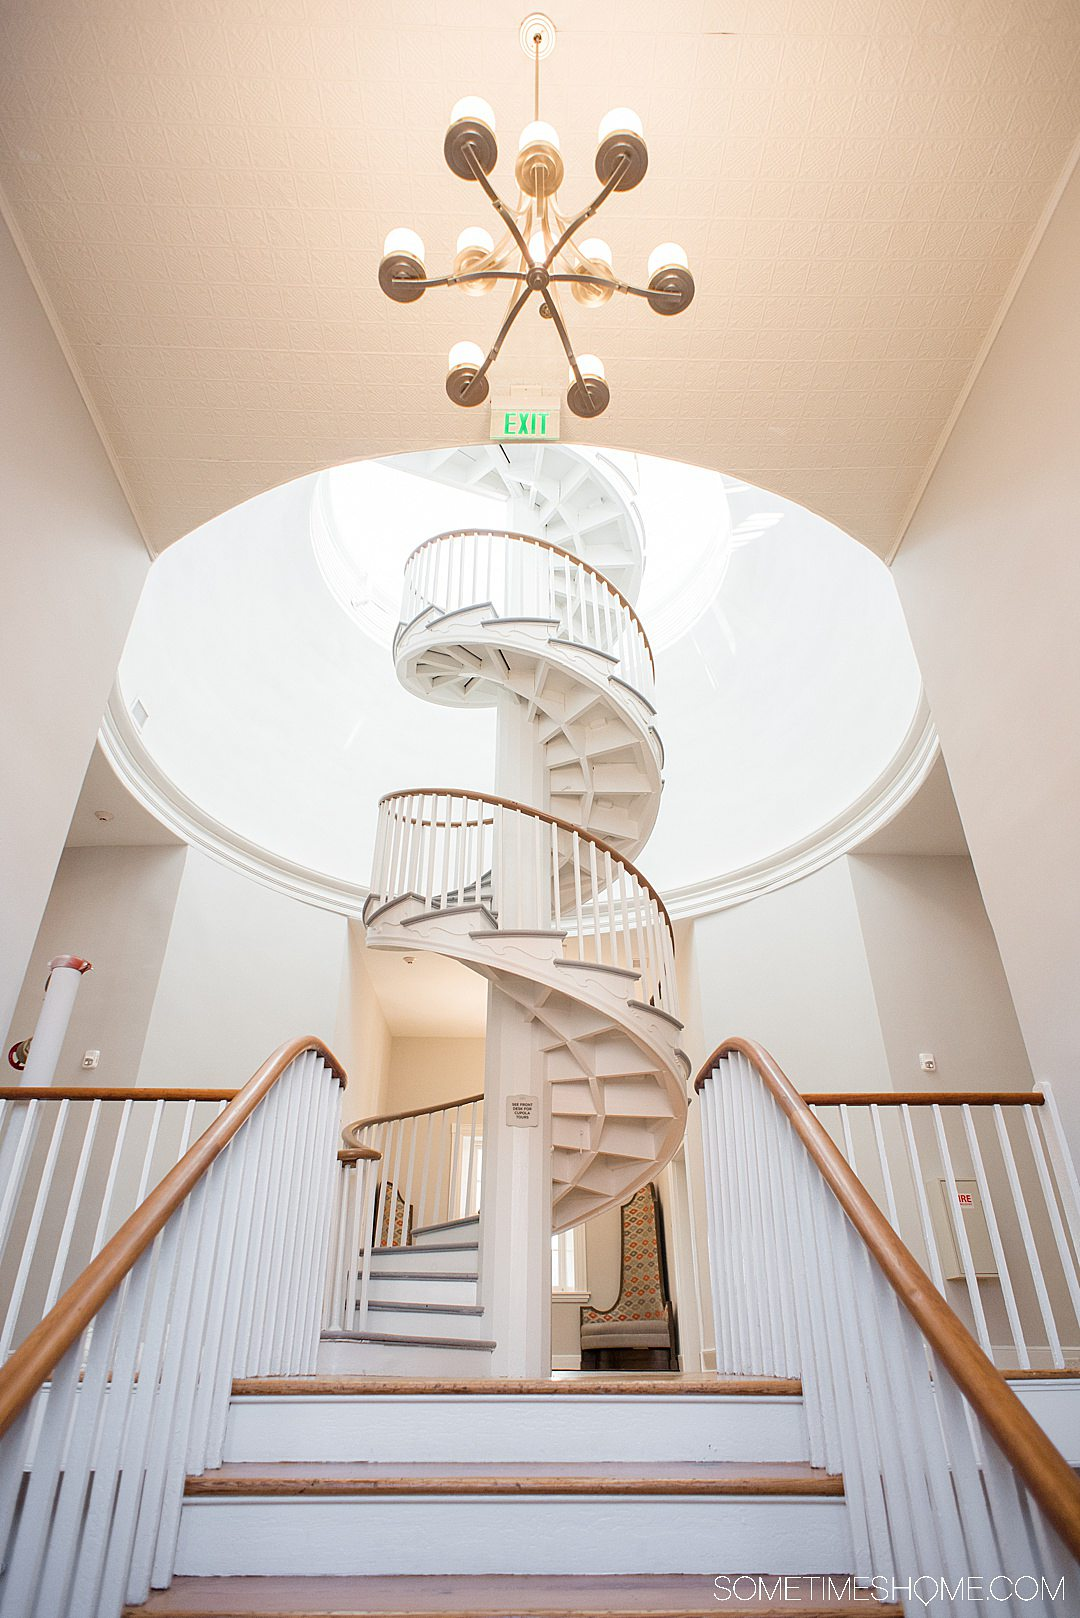 Blackburn Inn luxury boutique hotel spiral staircase in Staunton, Virginia.